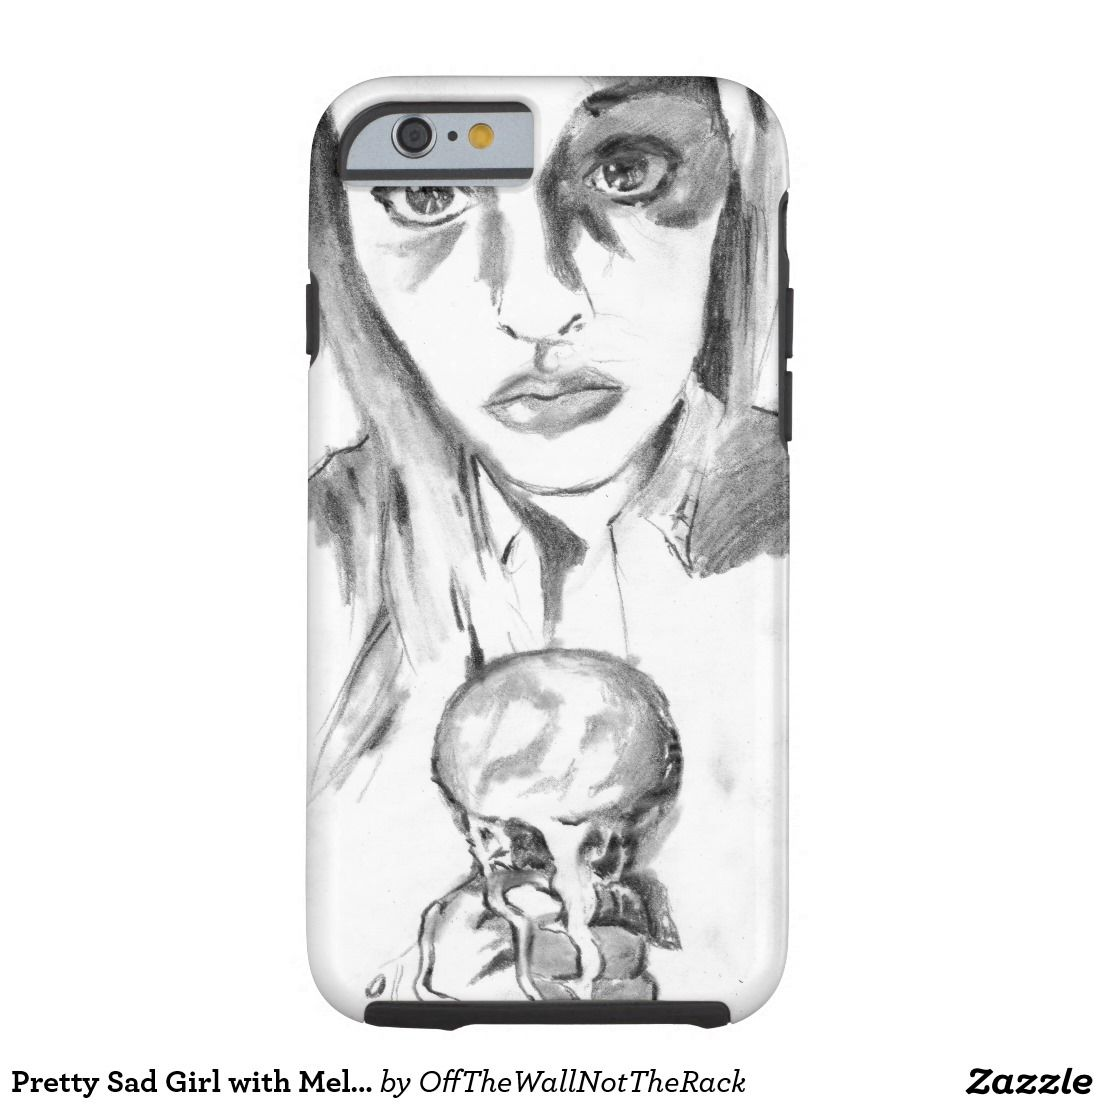 Pretty Sad Girl with Melting Ice Cream Cone Sketch Tough iPhone 6 Case